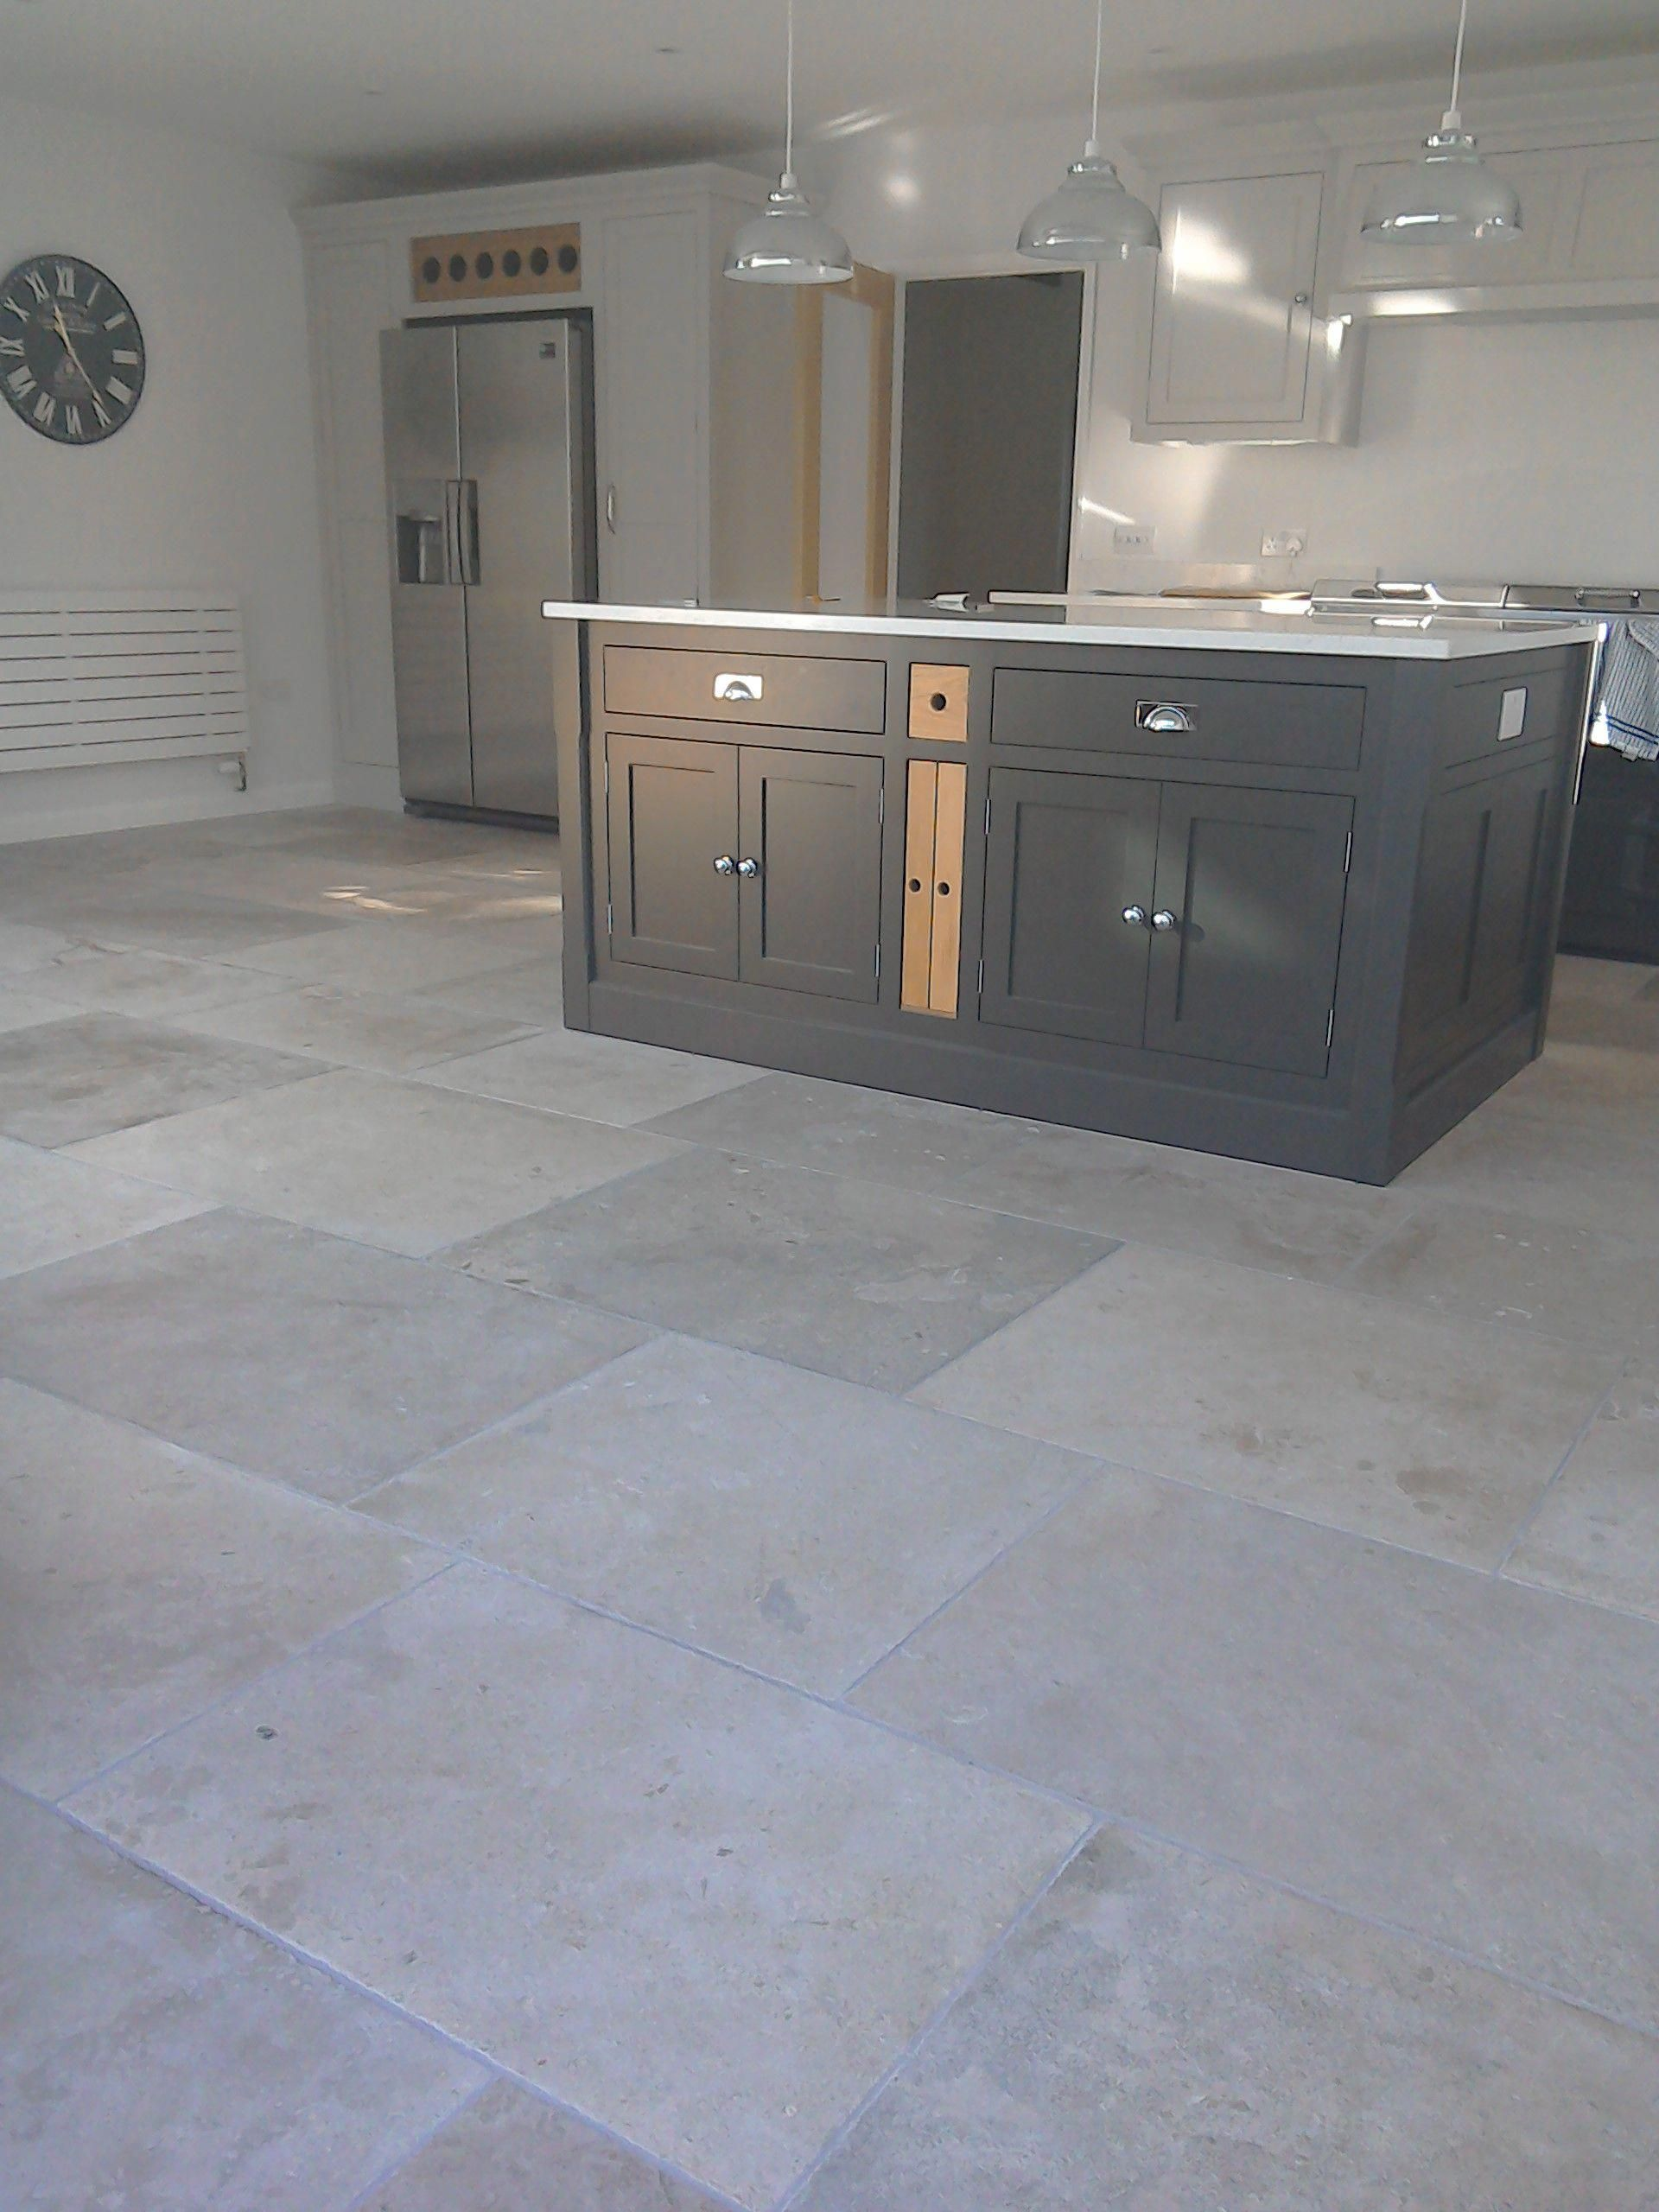 Wood Tile Linolium Floors Kitchens